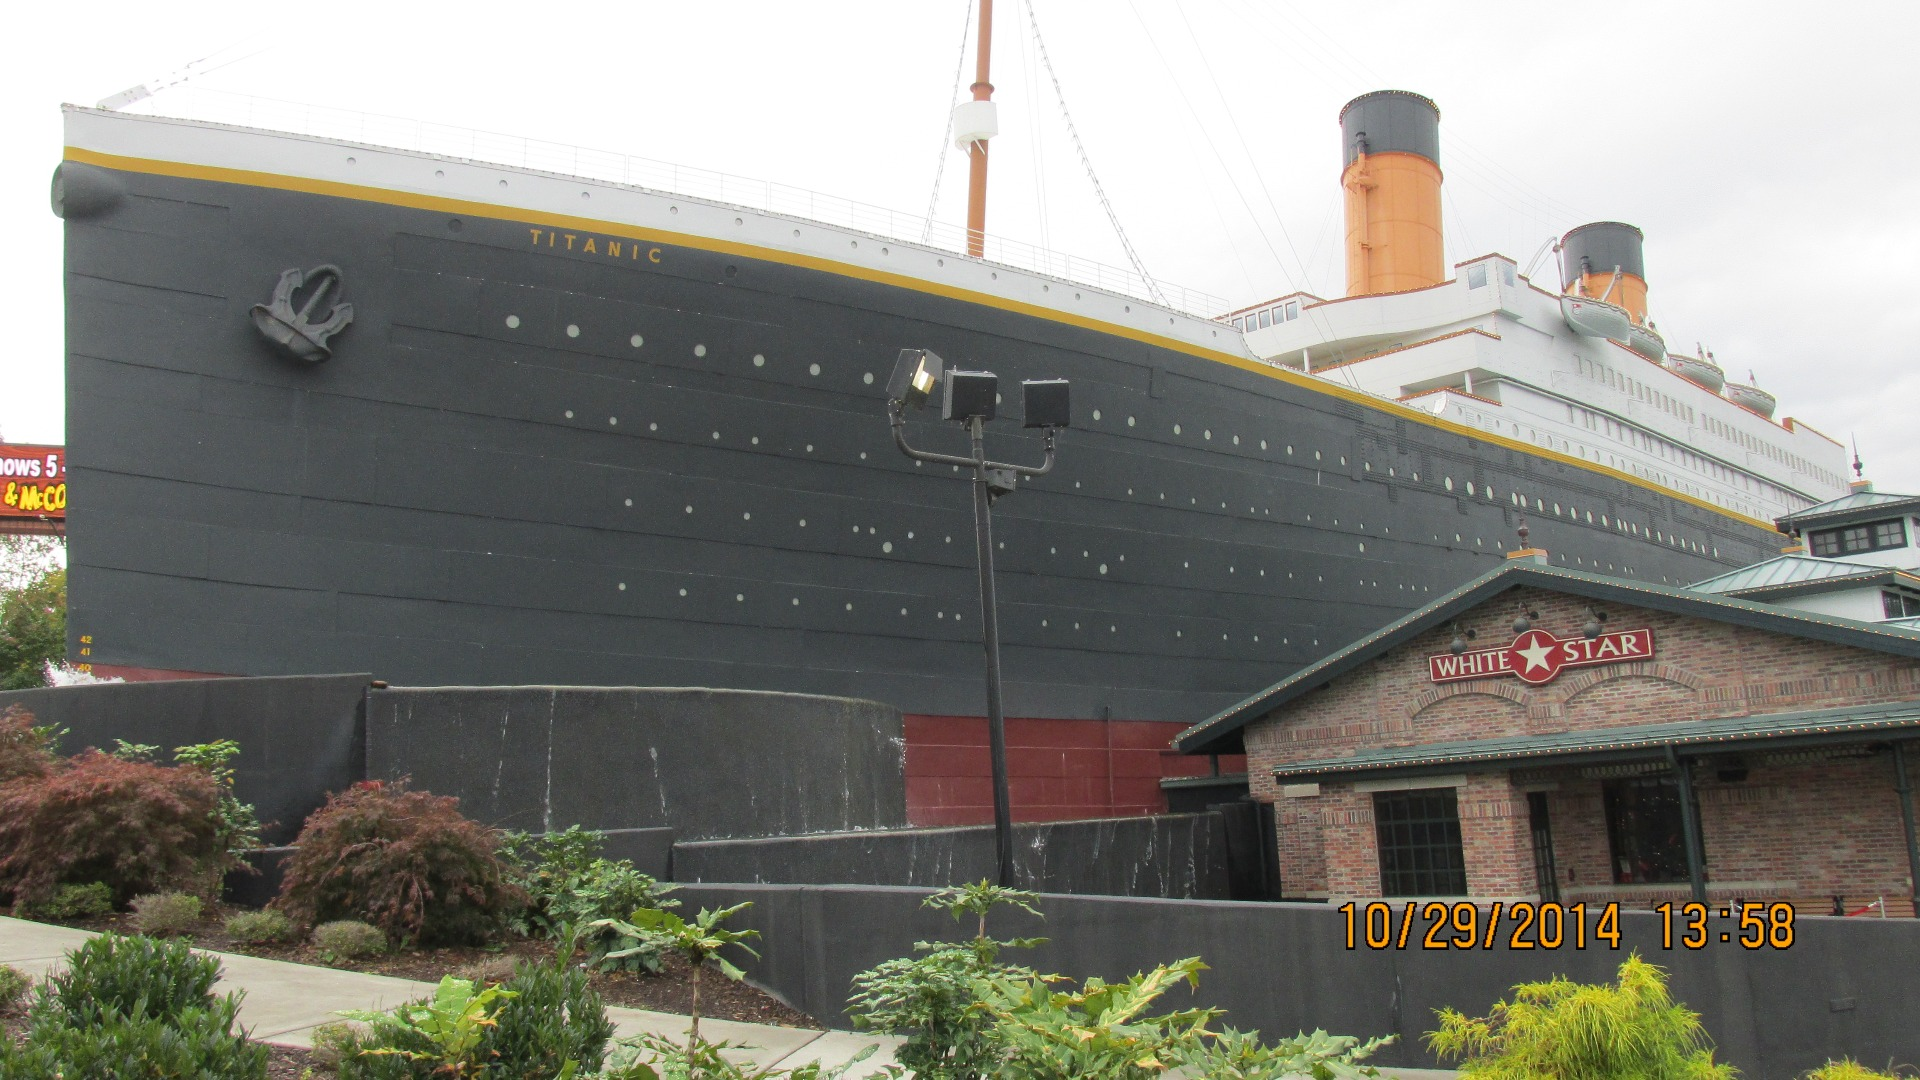 Titanic Museum - Pigeon Forge, TN | Pigeon Forge Attractions